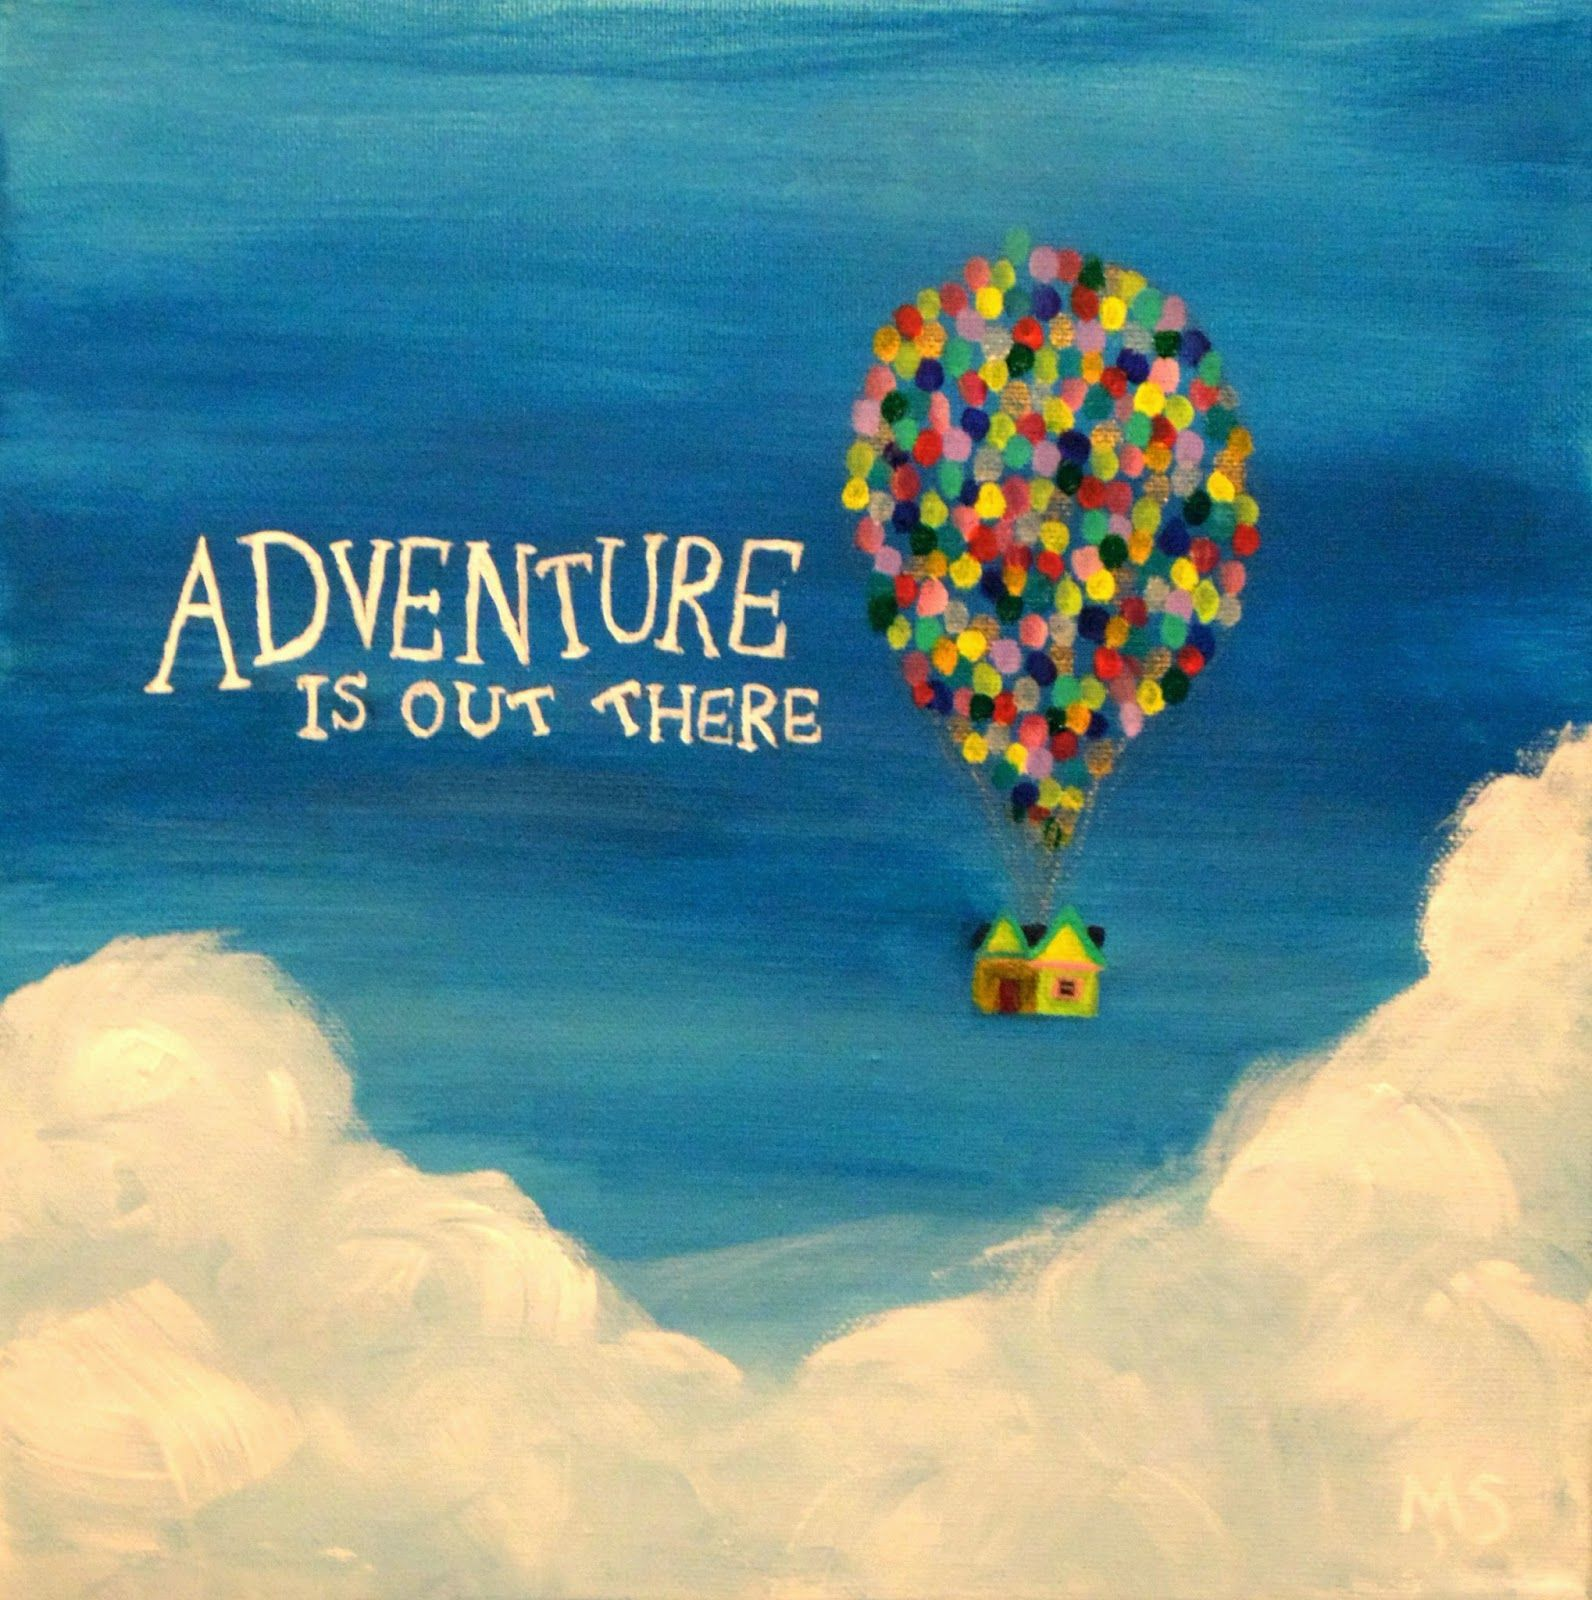 Movie Up Adventure Is Out There Quotes | Adventure is Out There ...